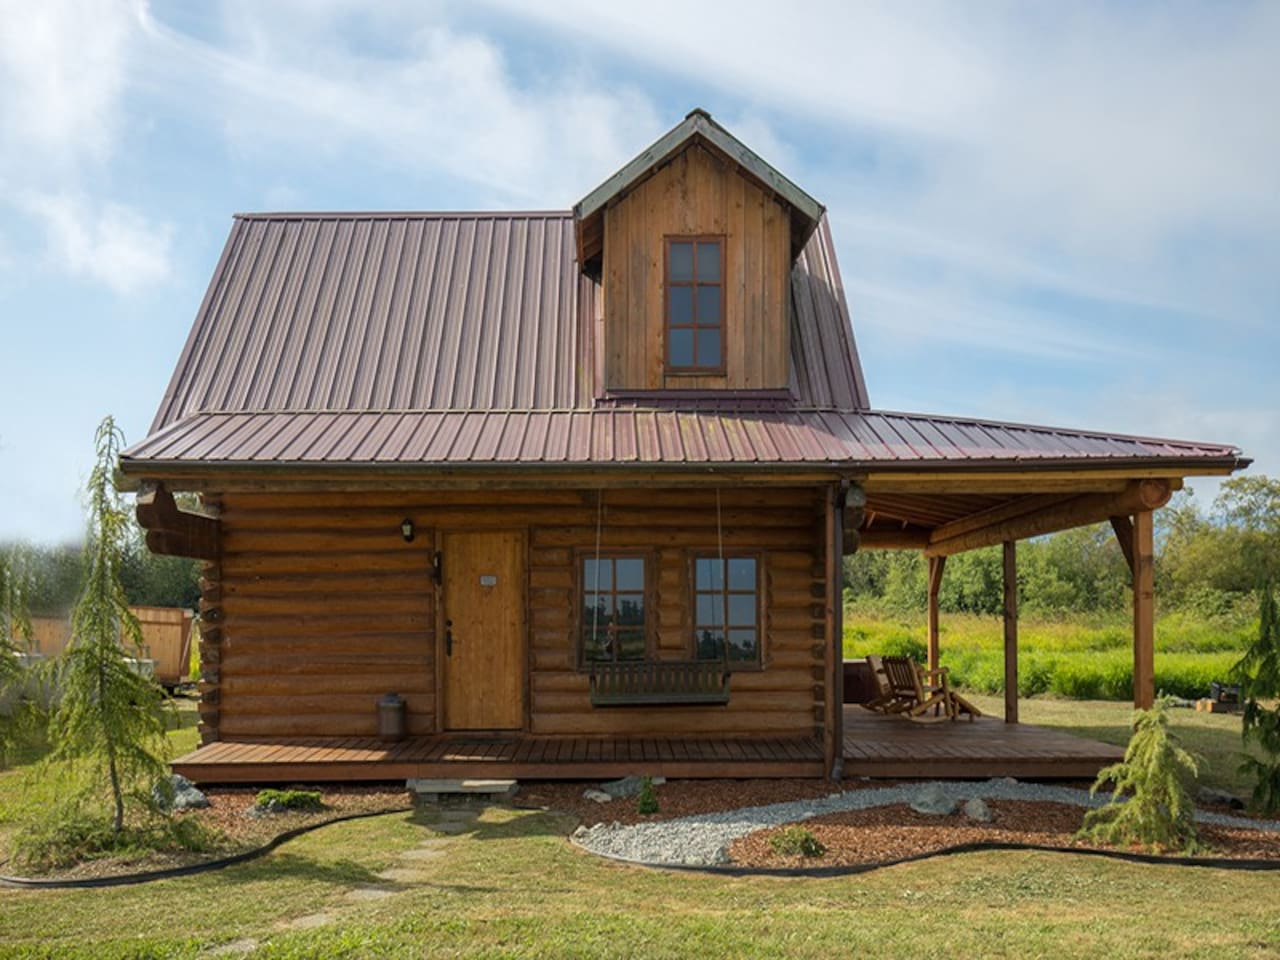 Blue Sky Cabin located on a private airstrip community in beautiful Sequim valley